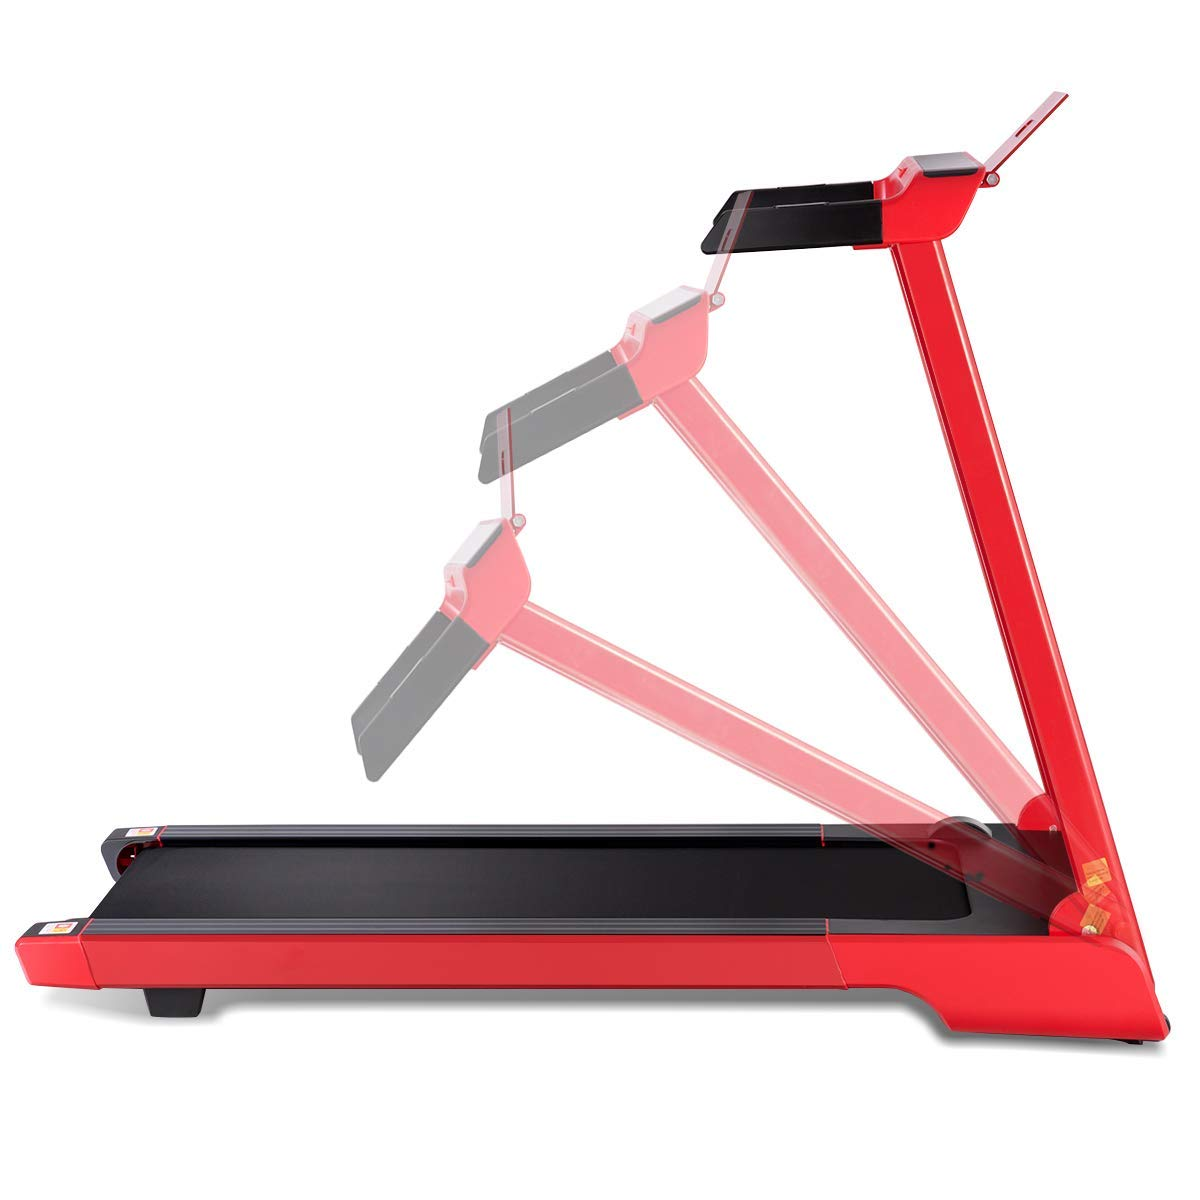 Goplus 2.25 HP Folding Treadmill Electric Cardio Fitness Jogging Running Machine Portable Motorized Power Slim Treadmill with Sports App and LED Display (Red) by Goplus (Image #6)